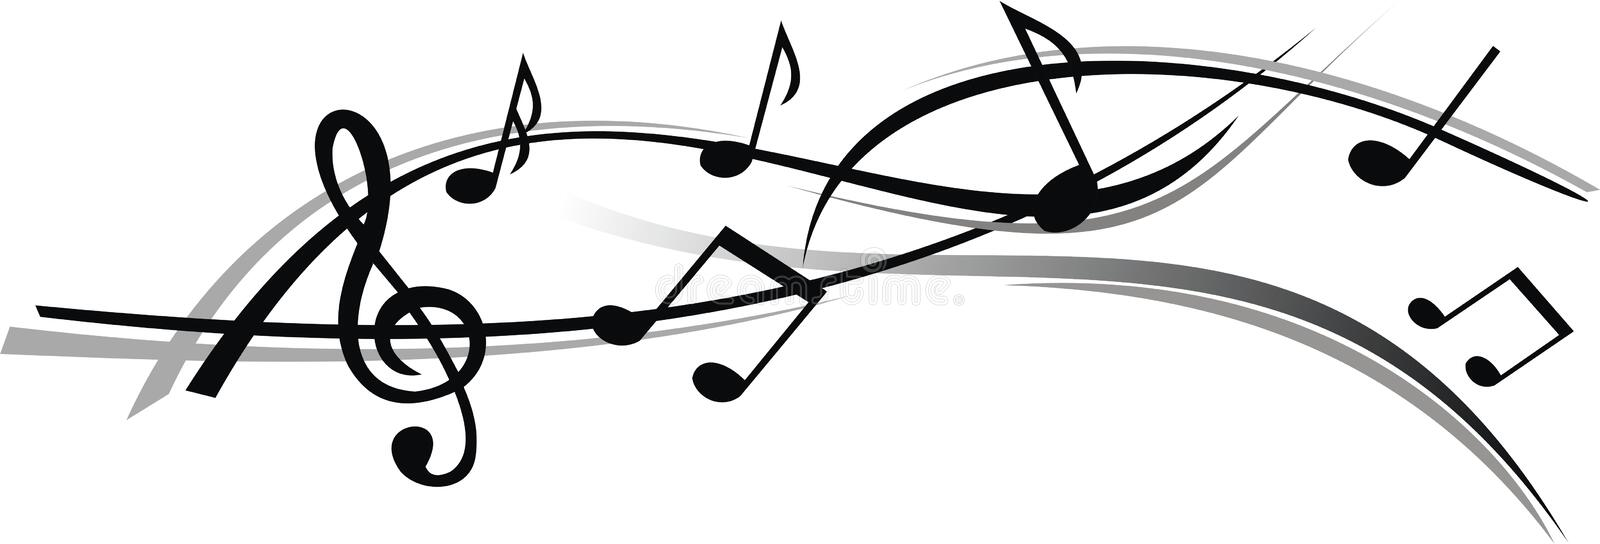 Download Abstract Sheet Of Music With White Background Stock Vector - Image: 8351690